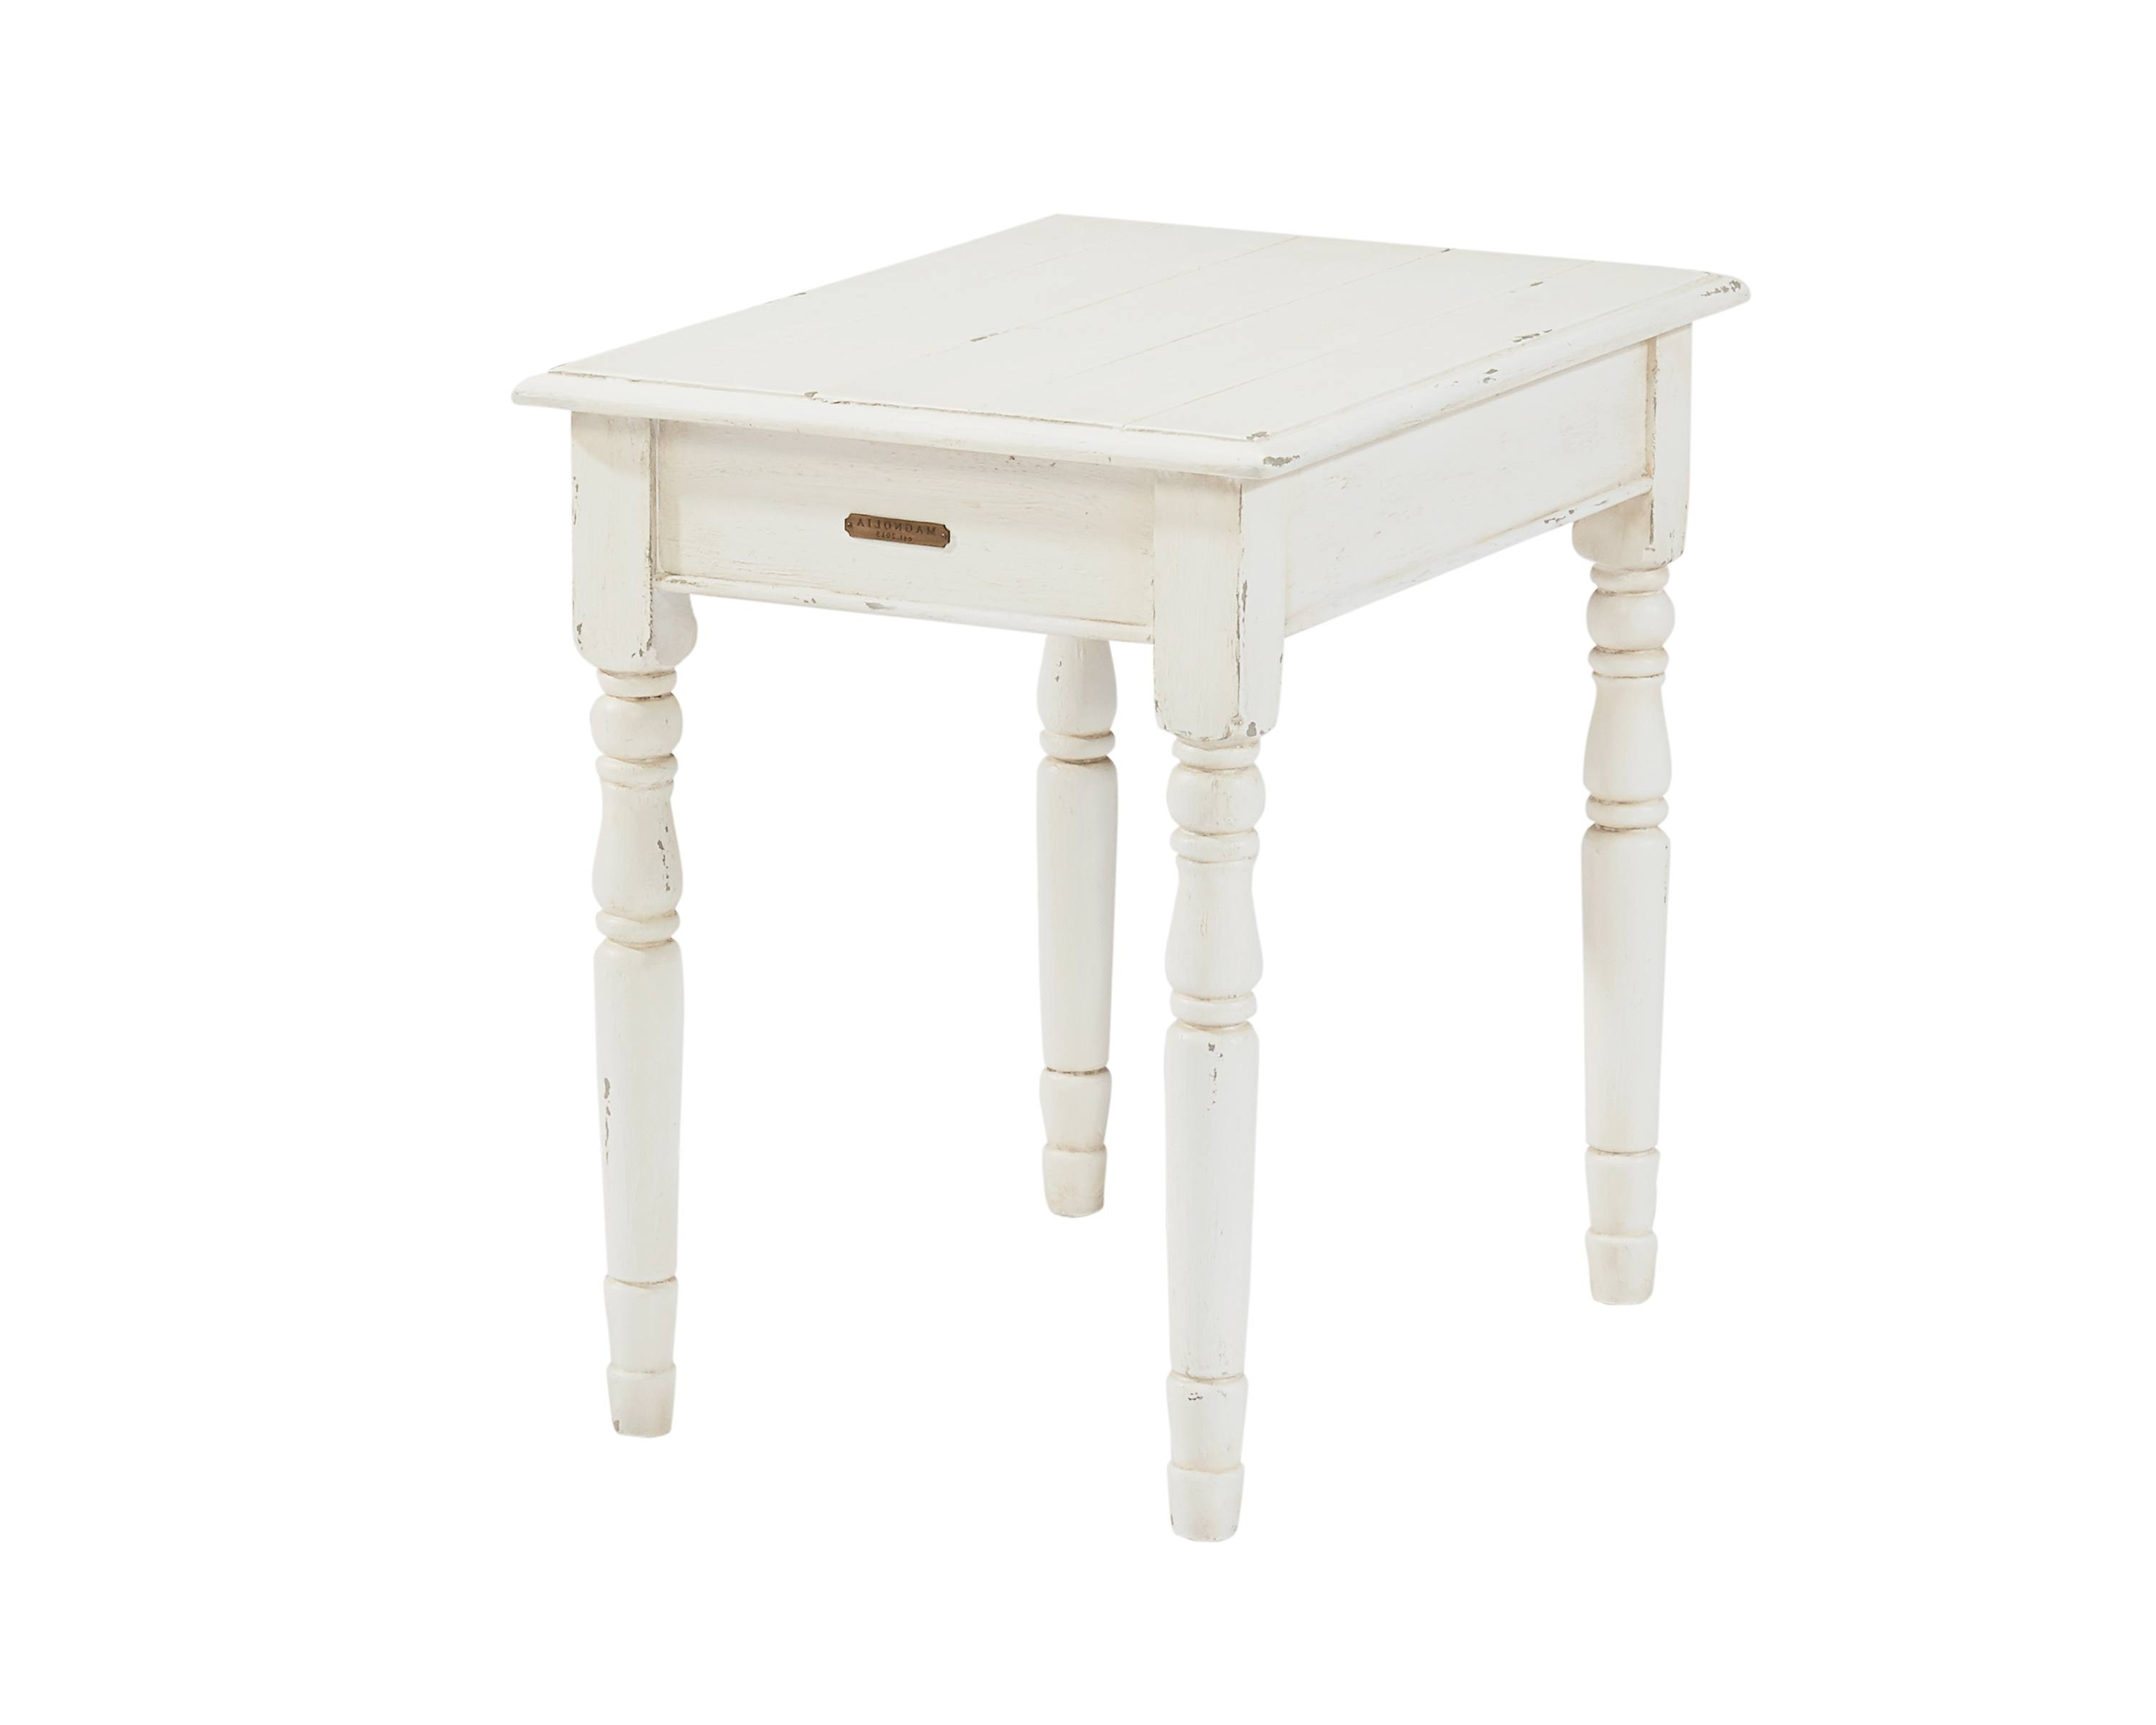 Newest Magnolia Home Scallop Antique White Cocktail Tables Intended For Homestead + Scallop – Magnolia Home (View 17 of 20)